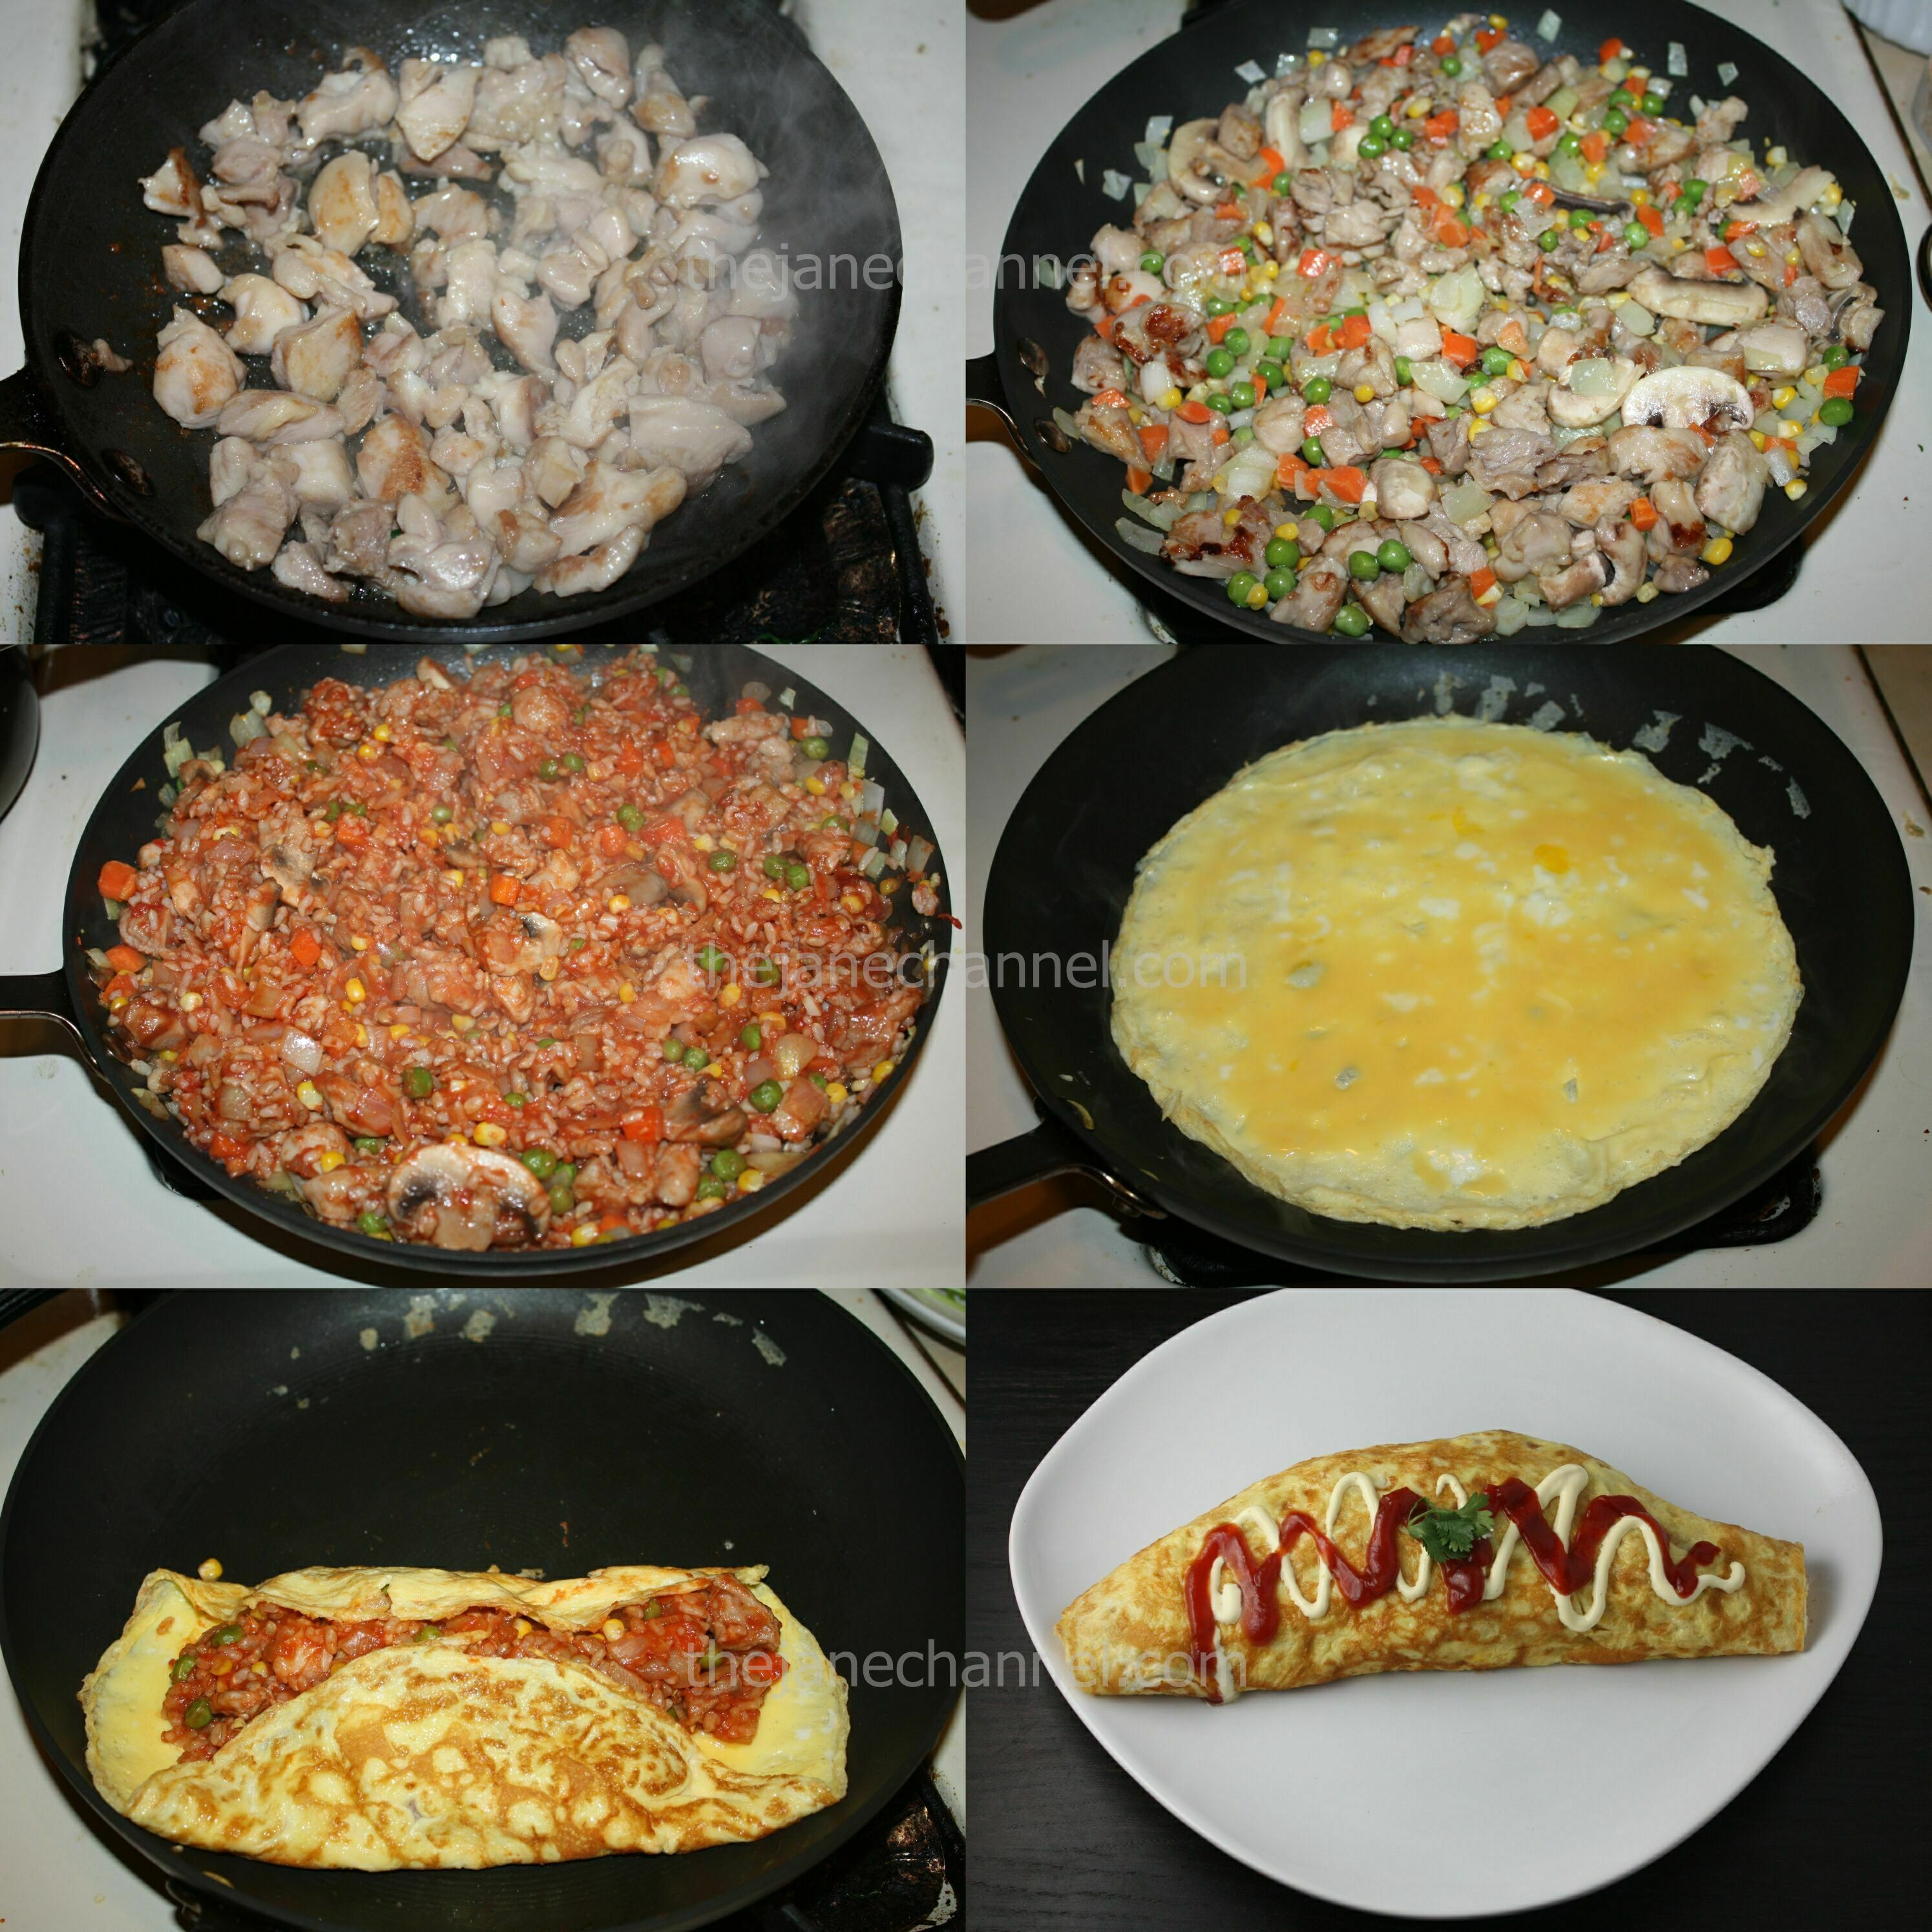 of each omurice 2 eggs for each omurice 1 teaspoon dairy creme or milk ...